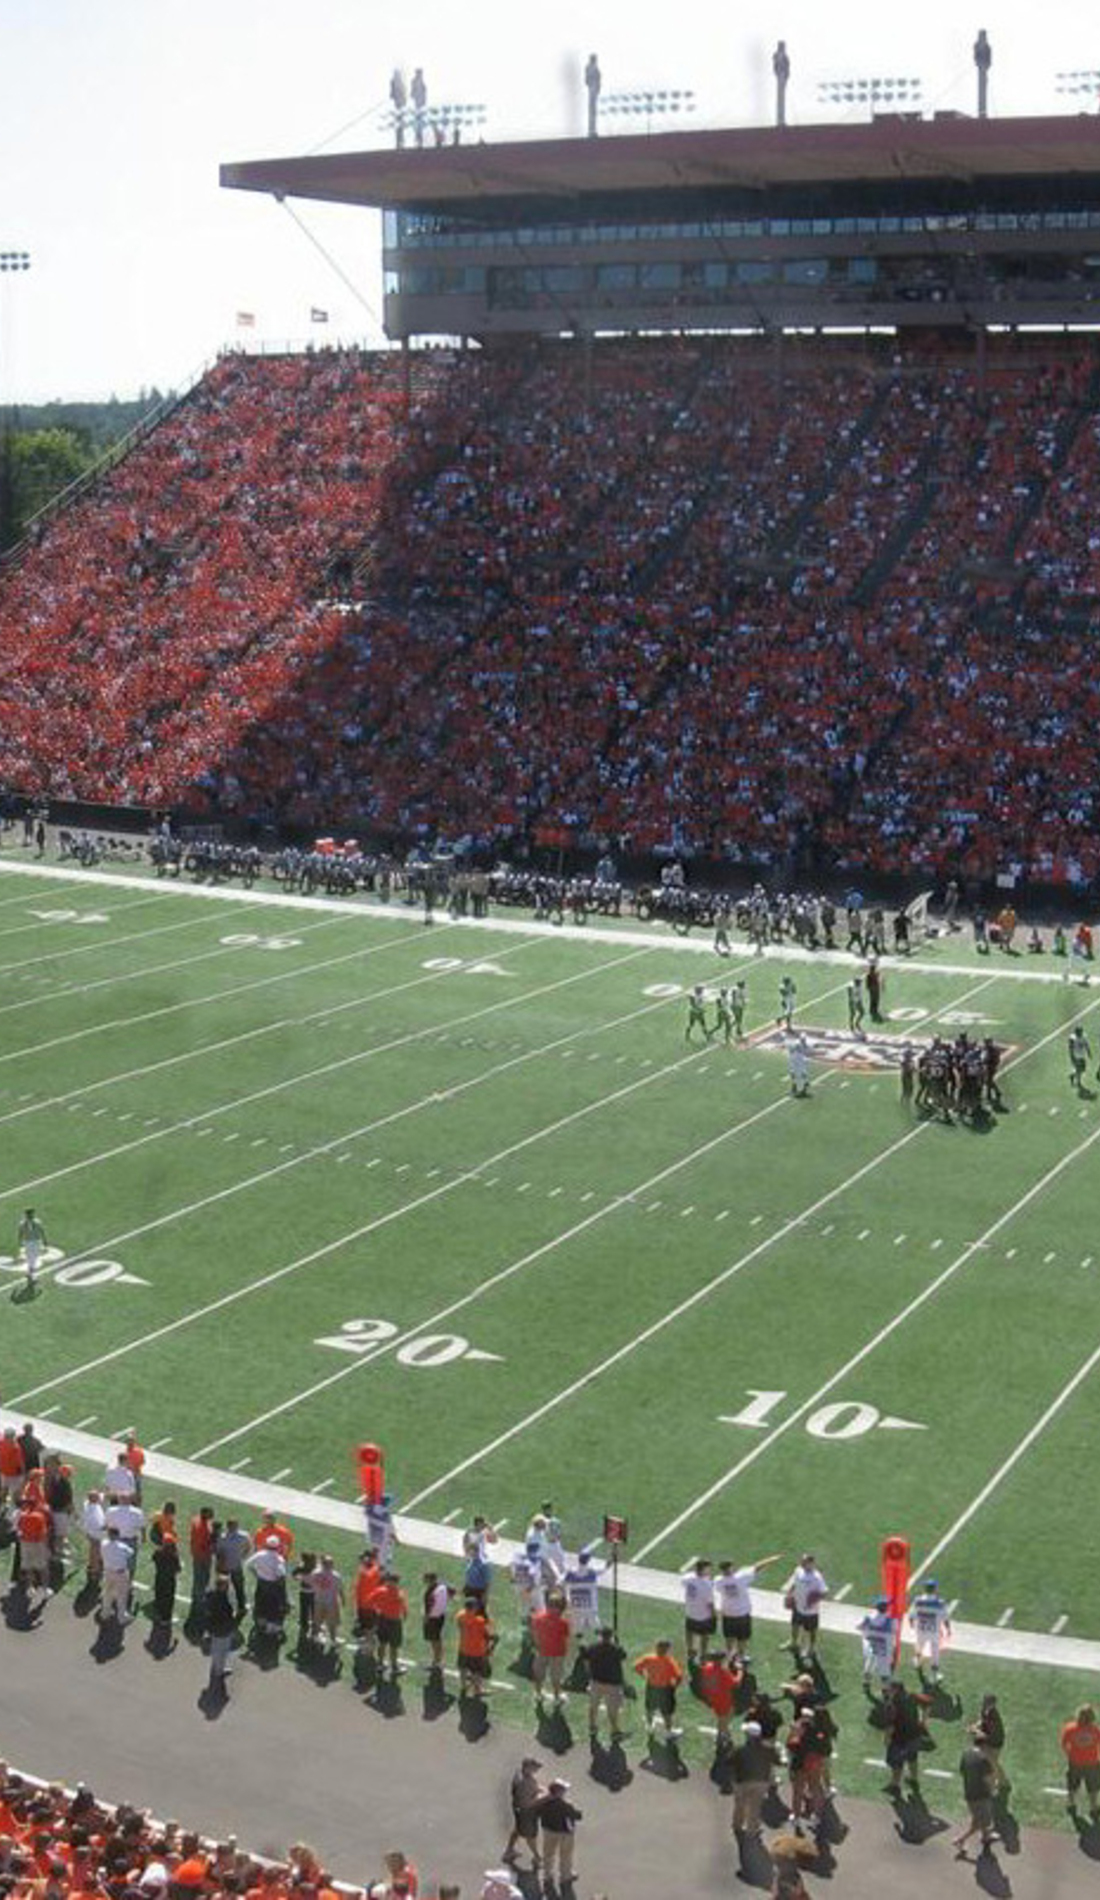 A Oregon State Beavers Football live event